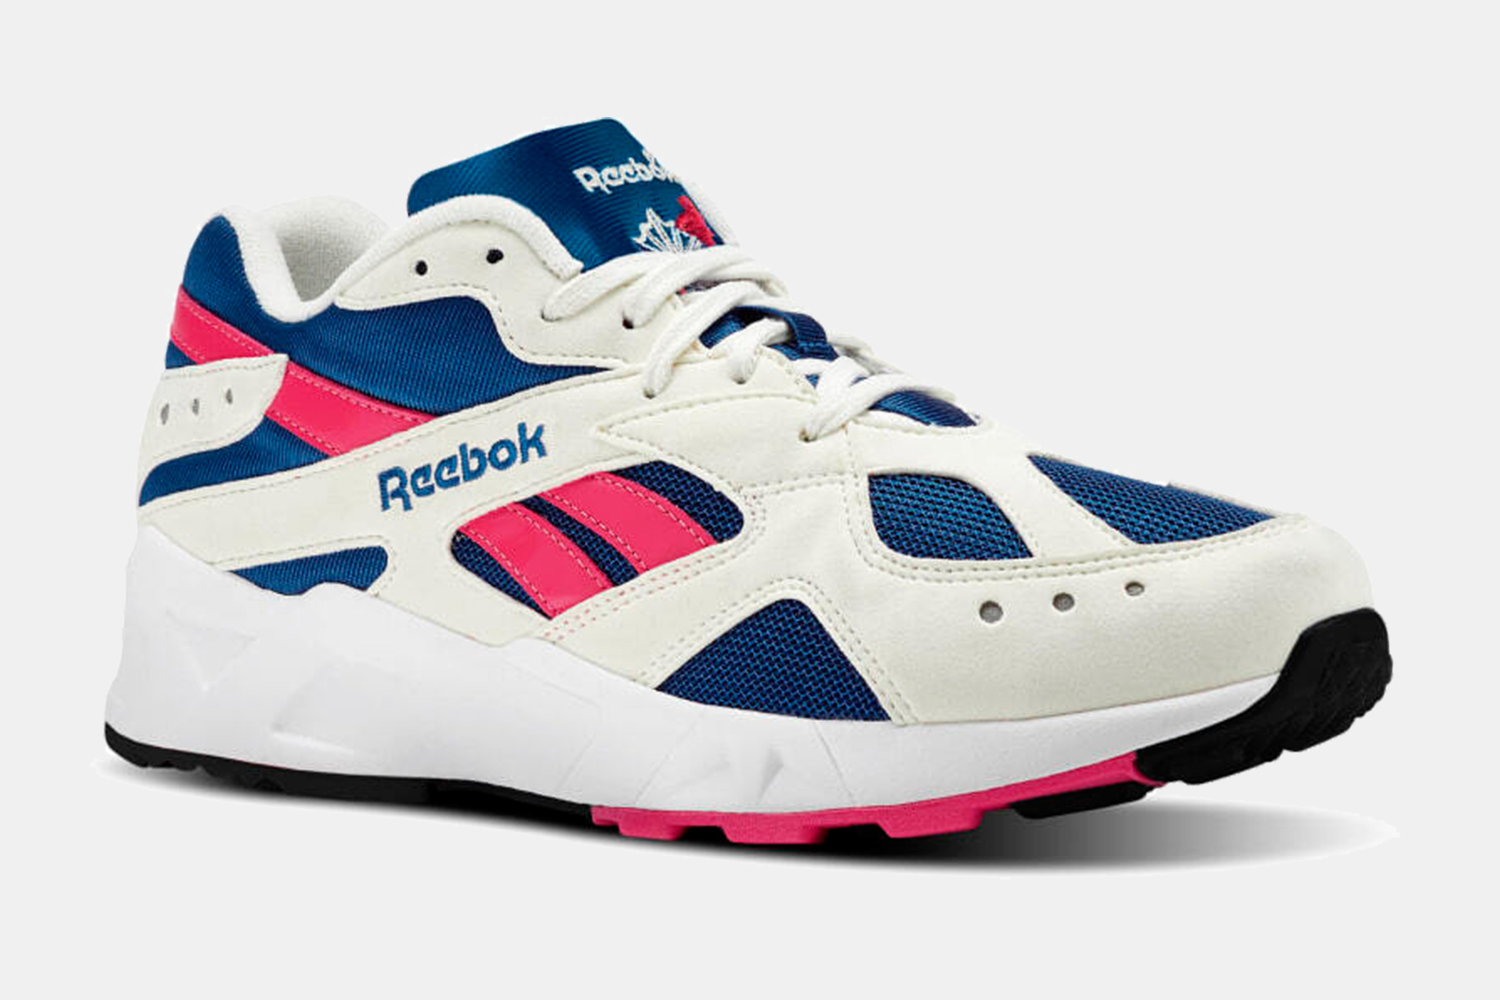 Reebok '90s Retro Aztrek Sneakers Sale